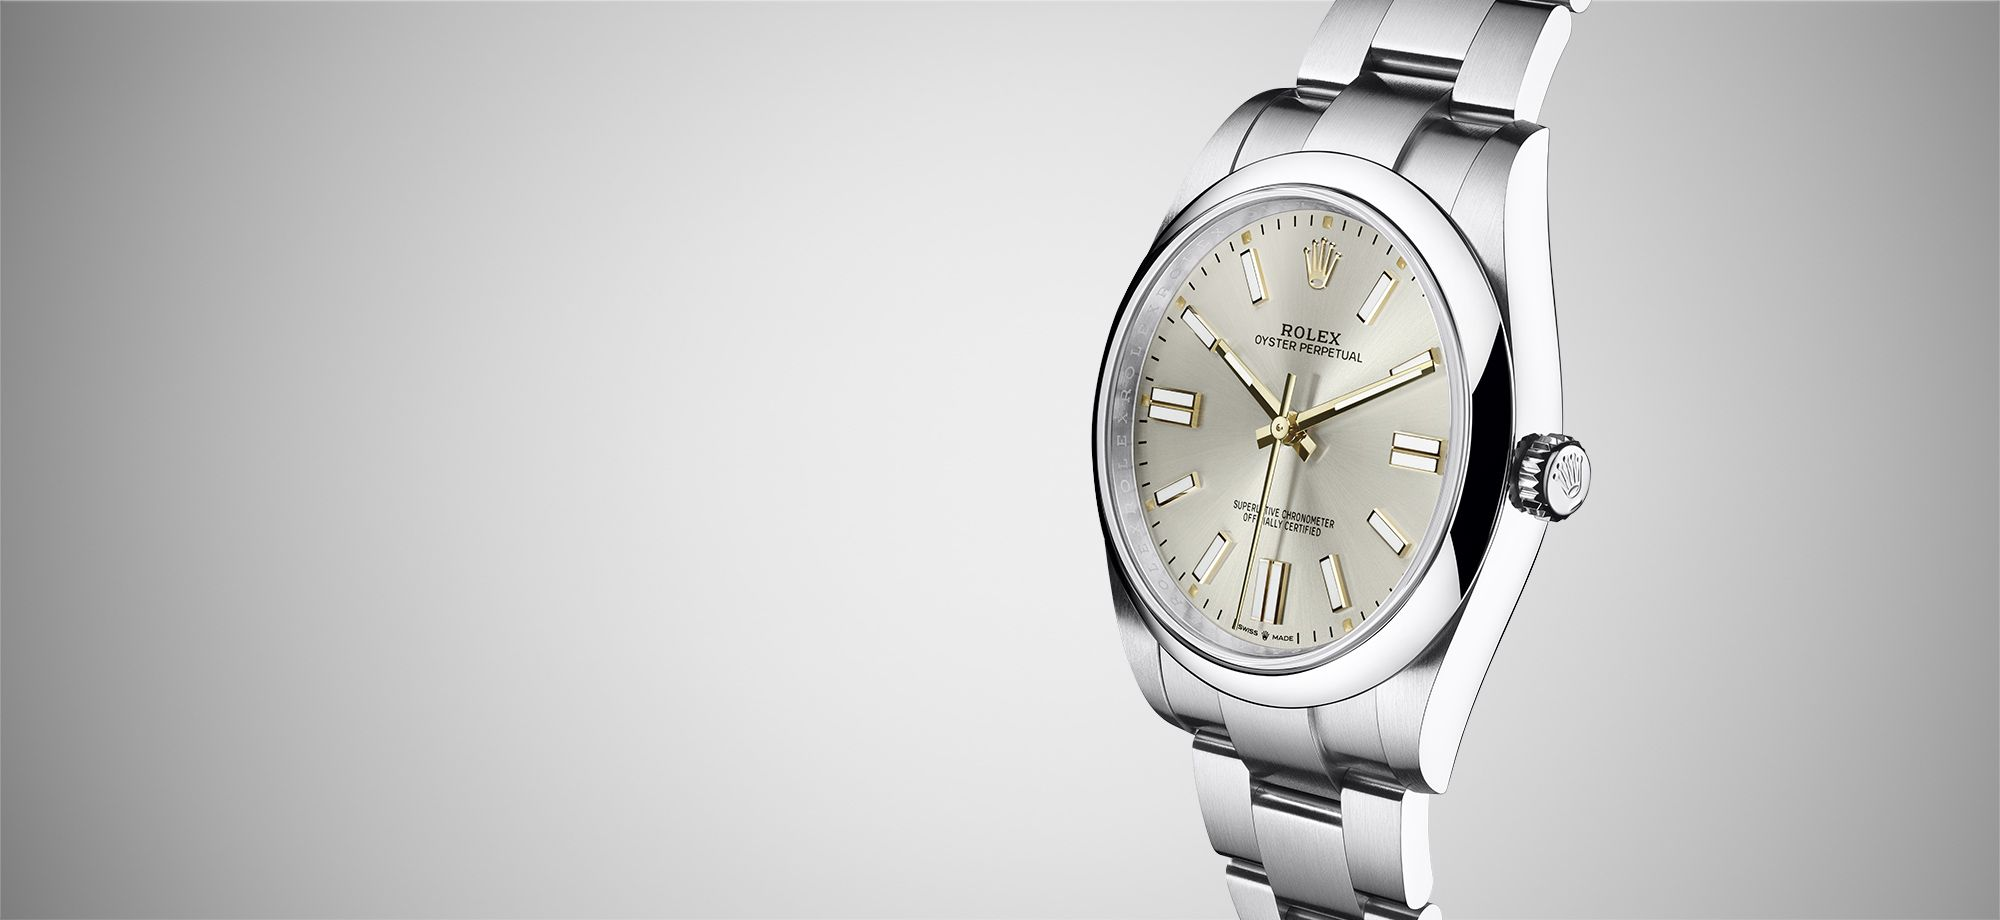 Rolex Oyster Perpetual M124300-0001